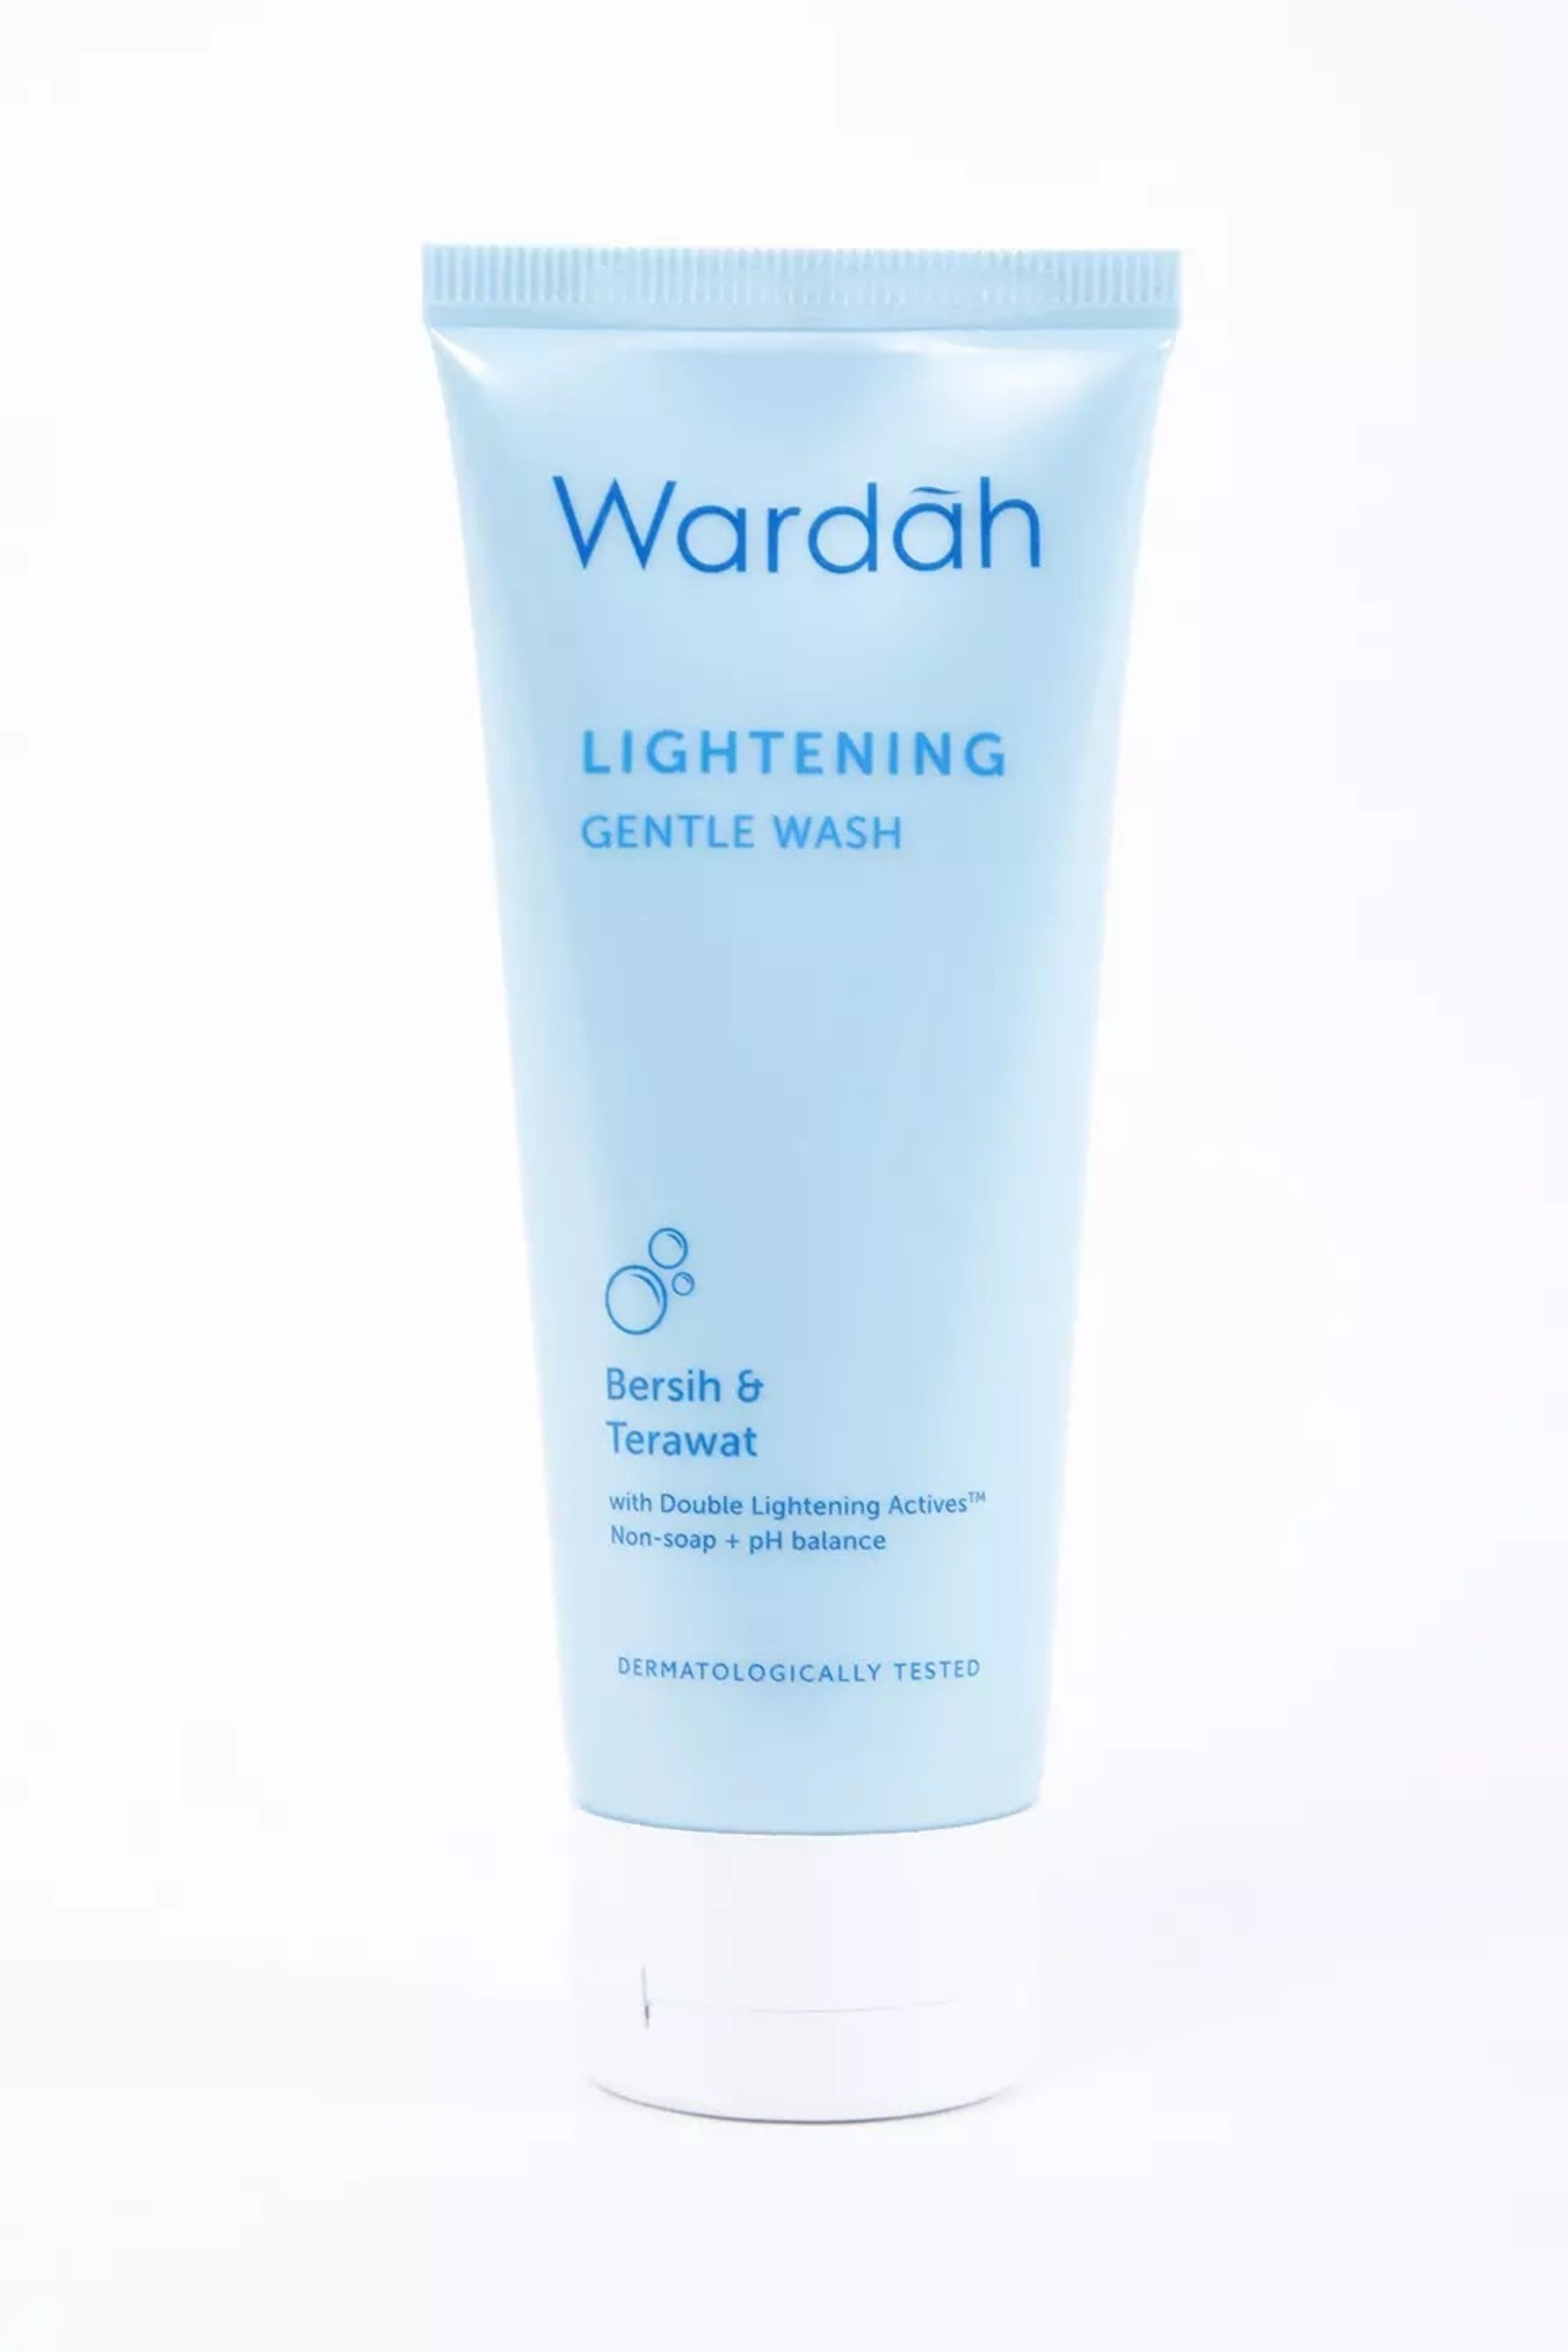 Wardah Lightening Gentle Wash with Double Ligthening Actives 60ml